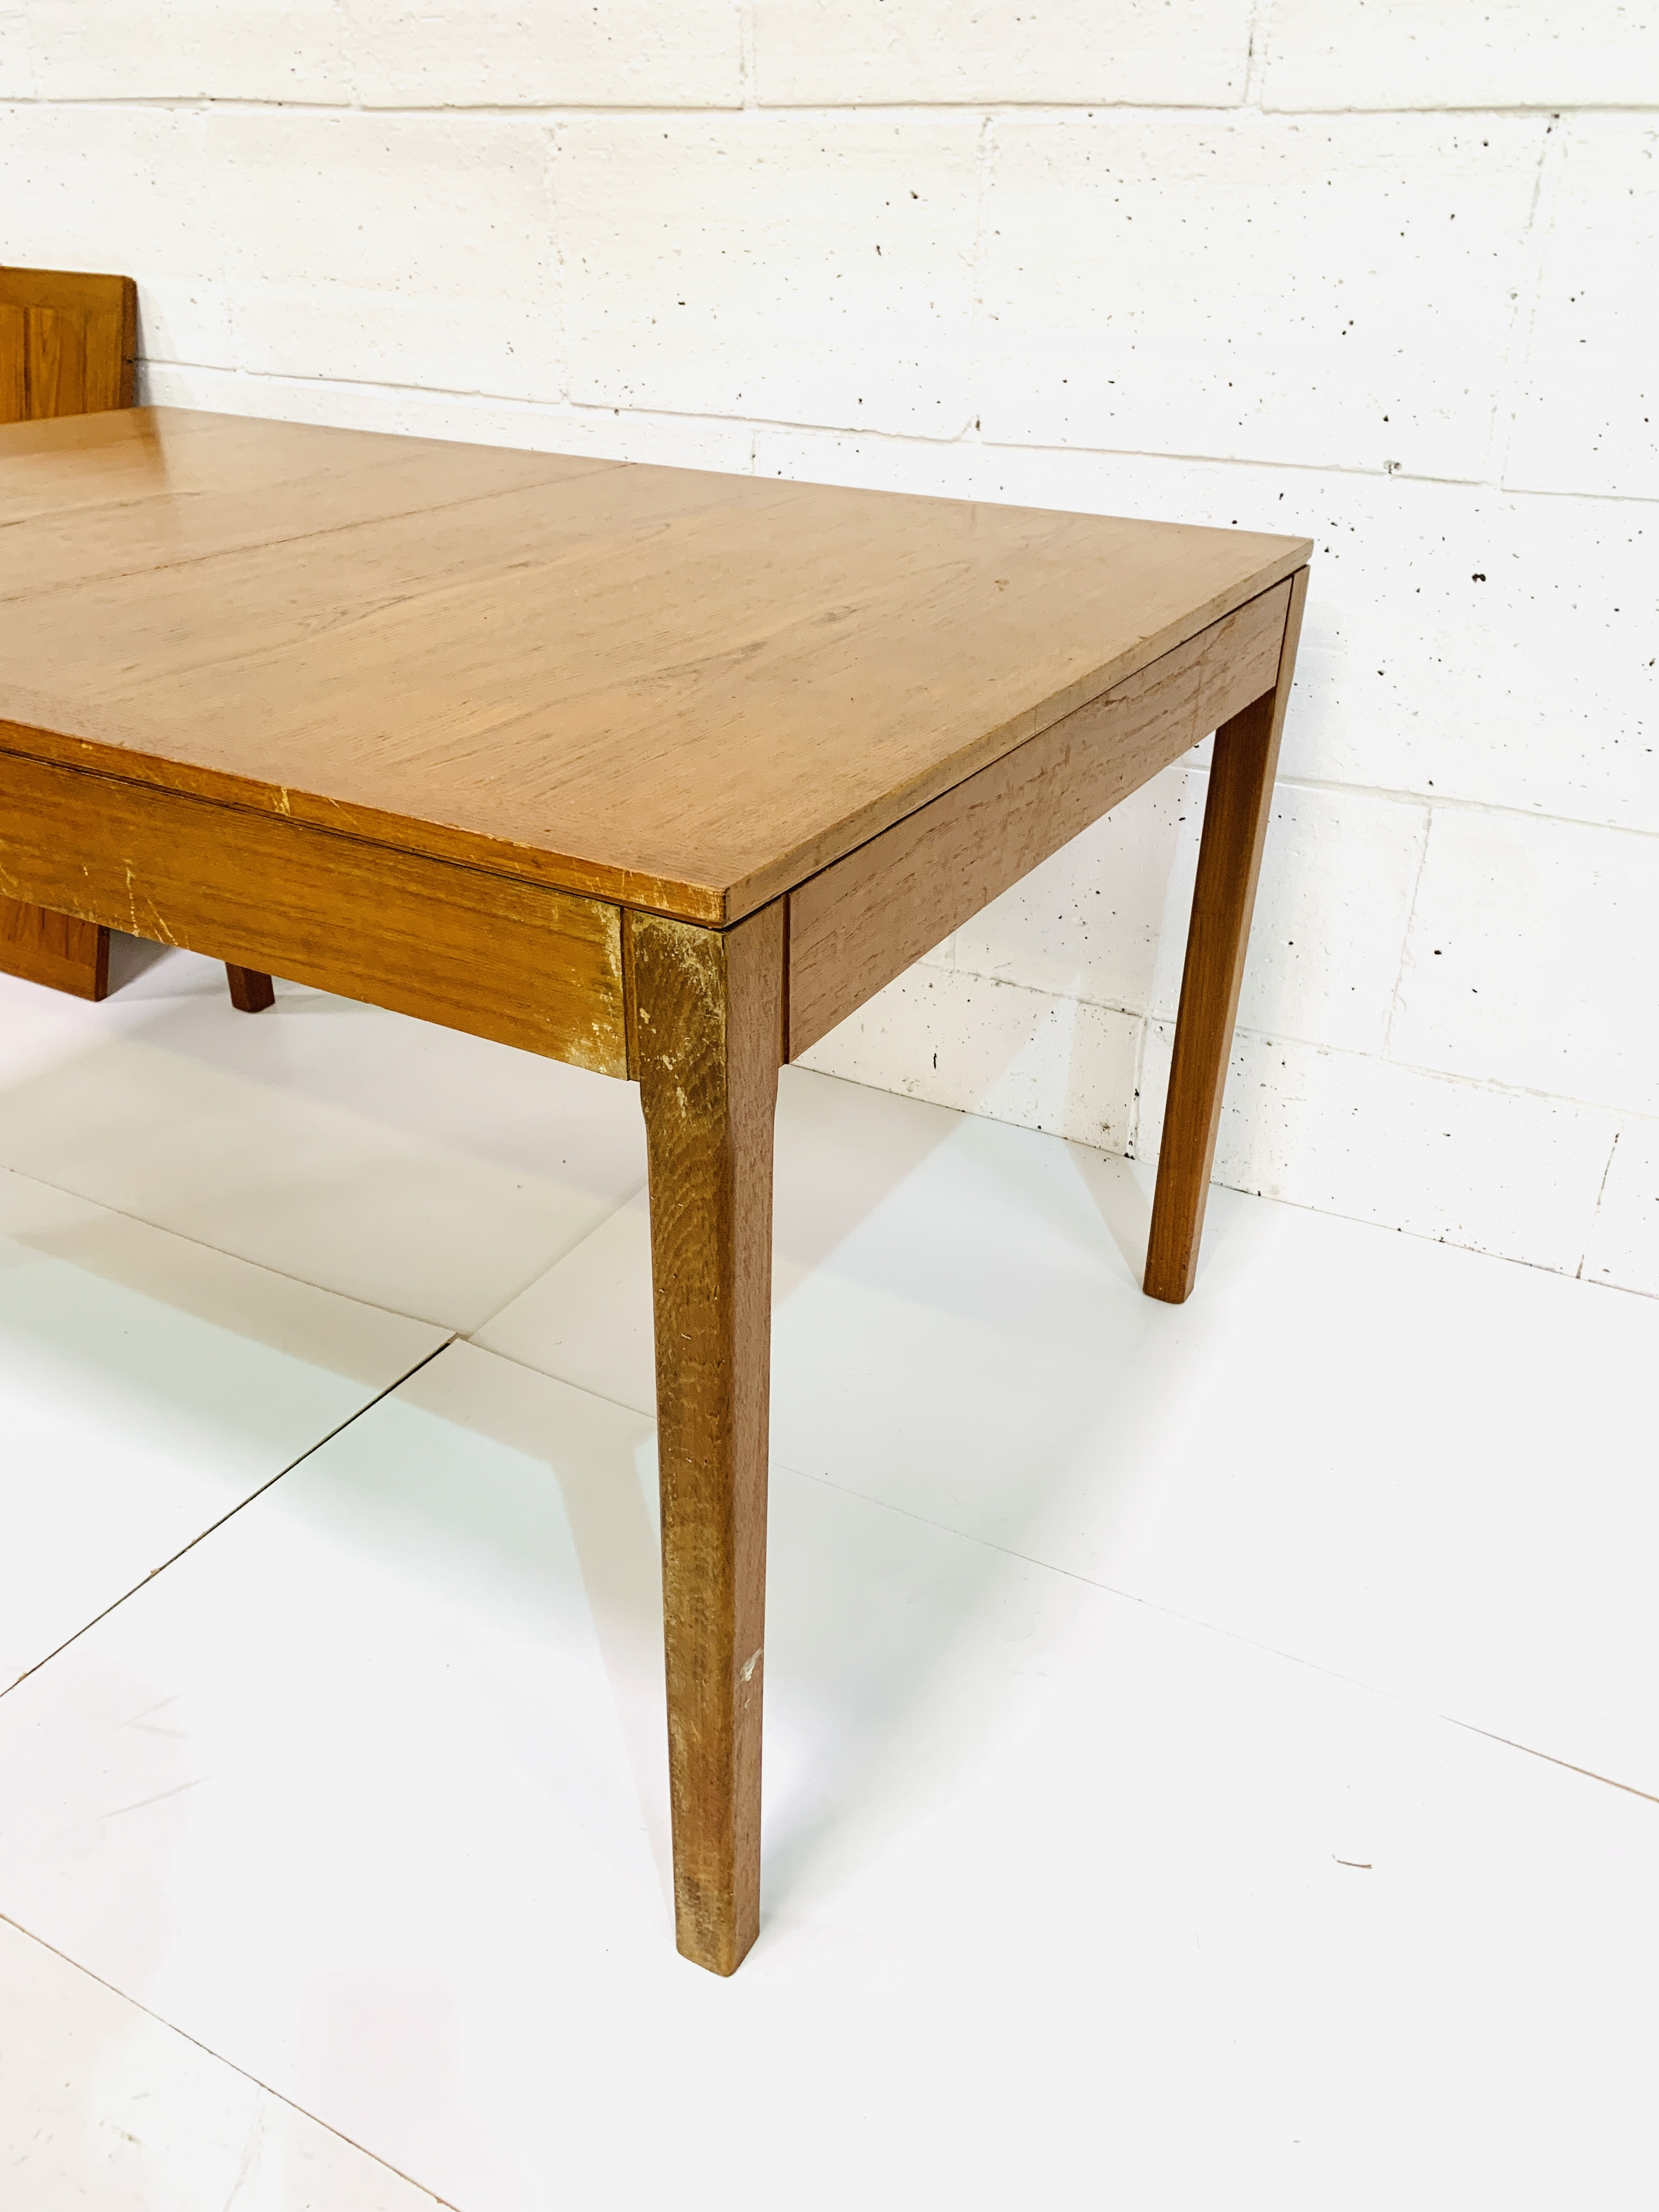 Teak extendable dining table - Image 3 of 4